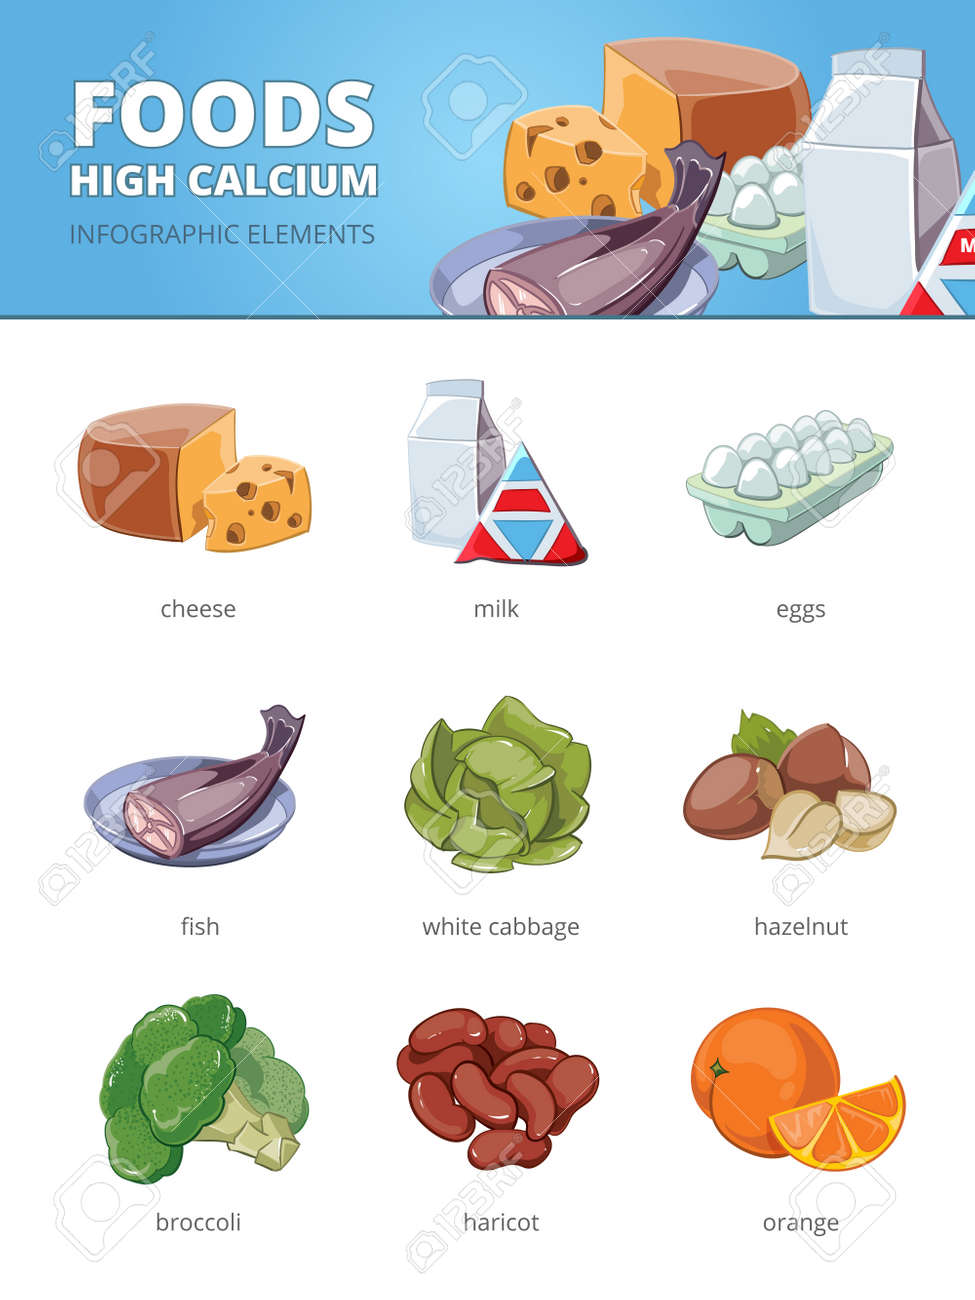 High calcium and vitamins foods. Haricot hazelnut cabbage, egg fish broccoli orange cheese. Vector infographic illustration - 166762617